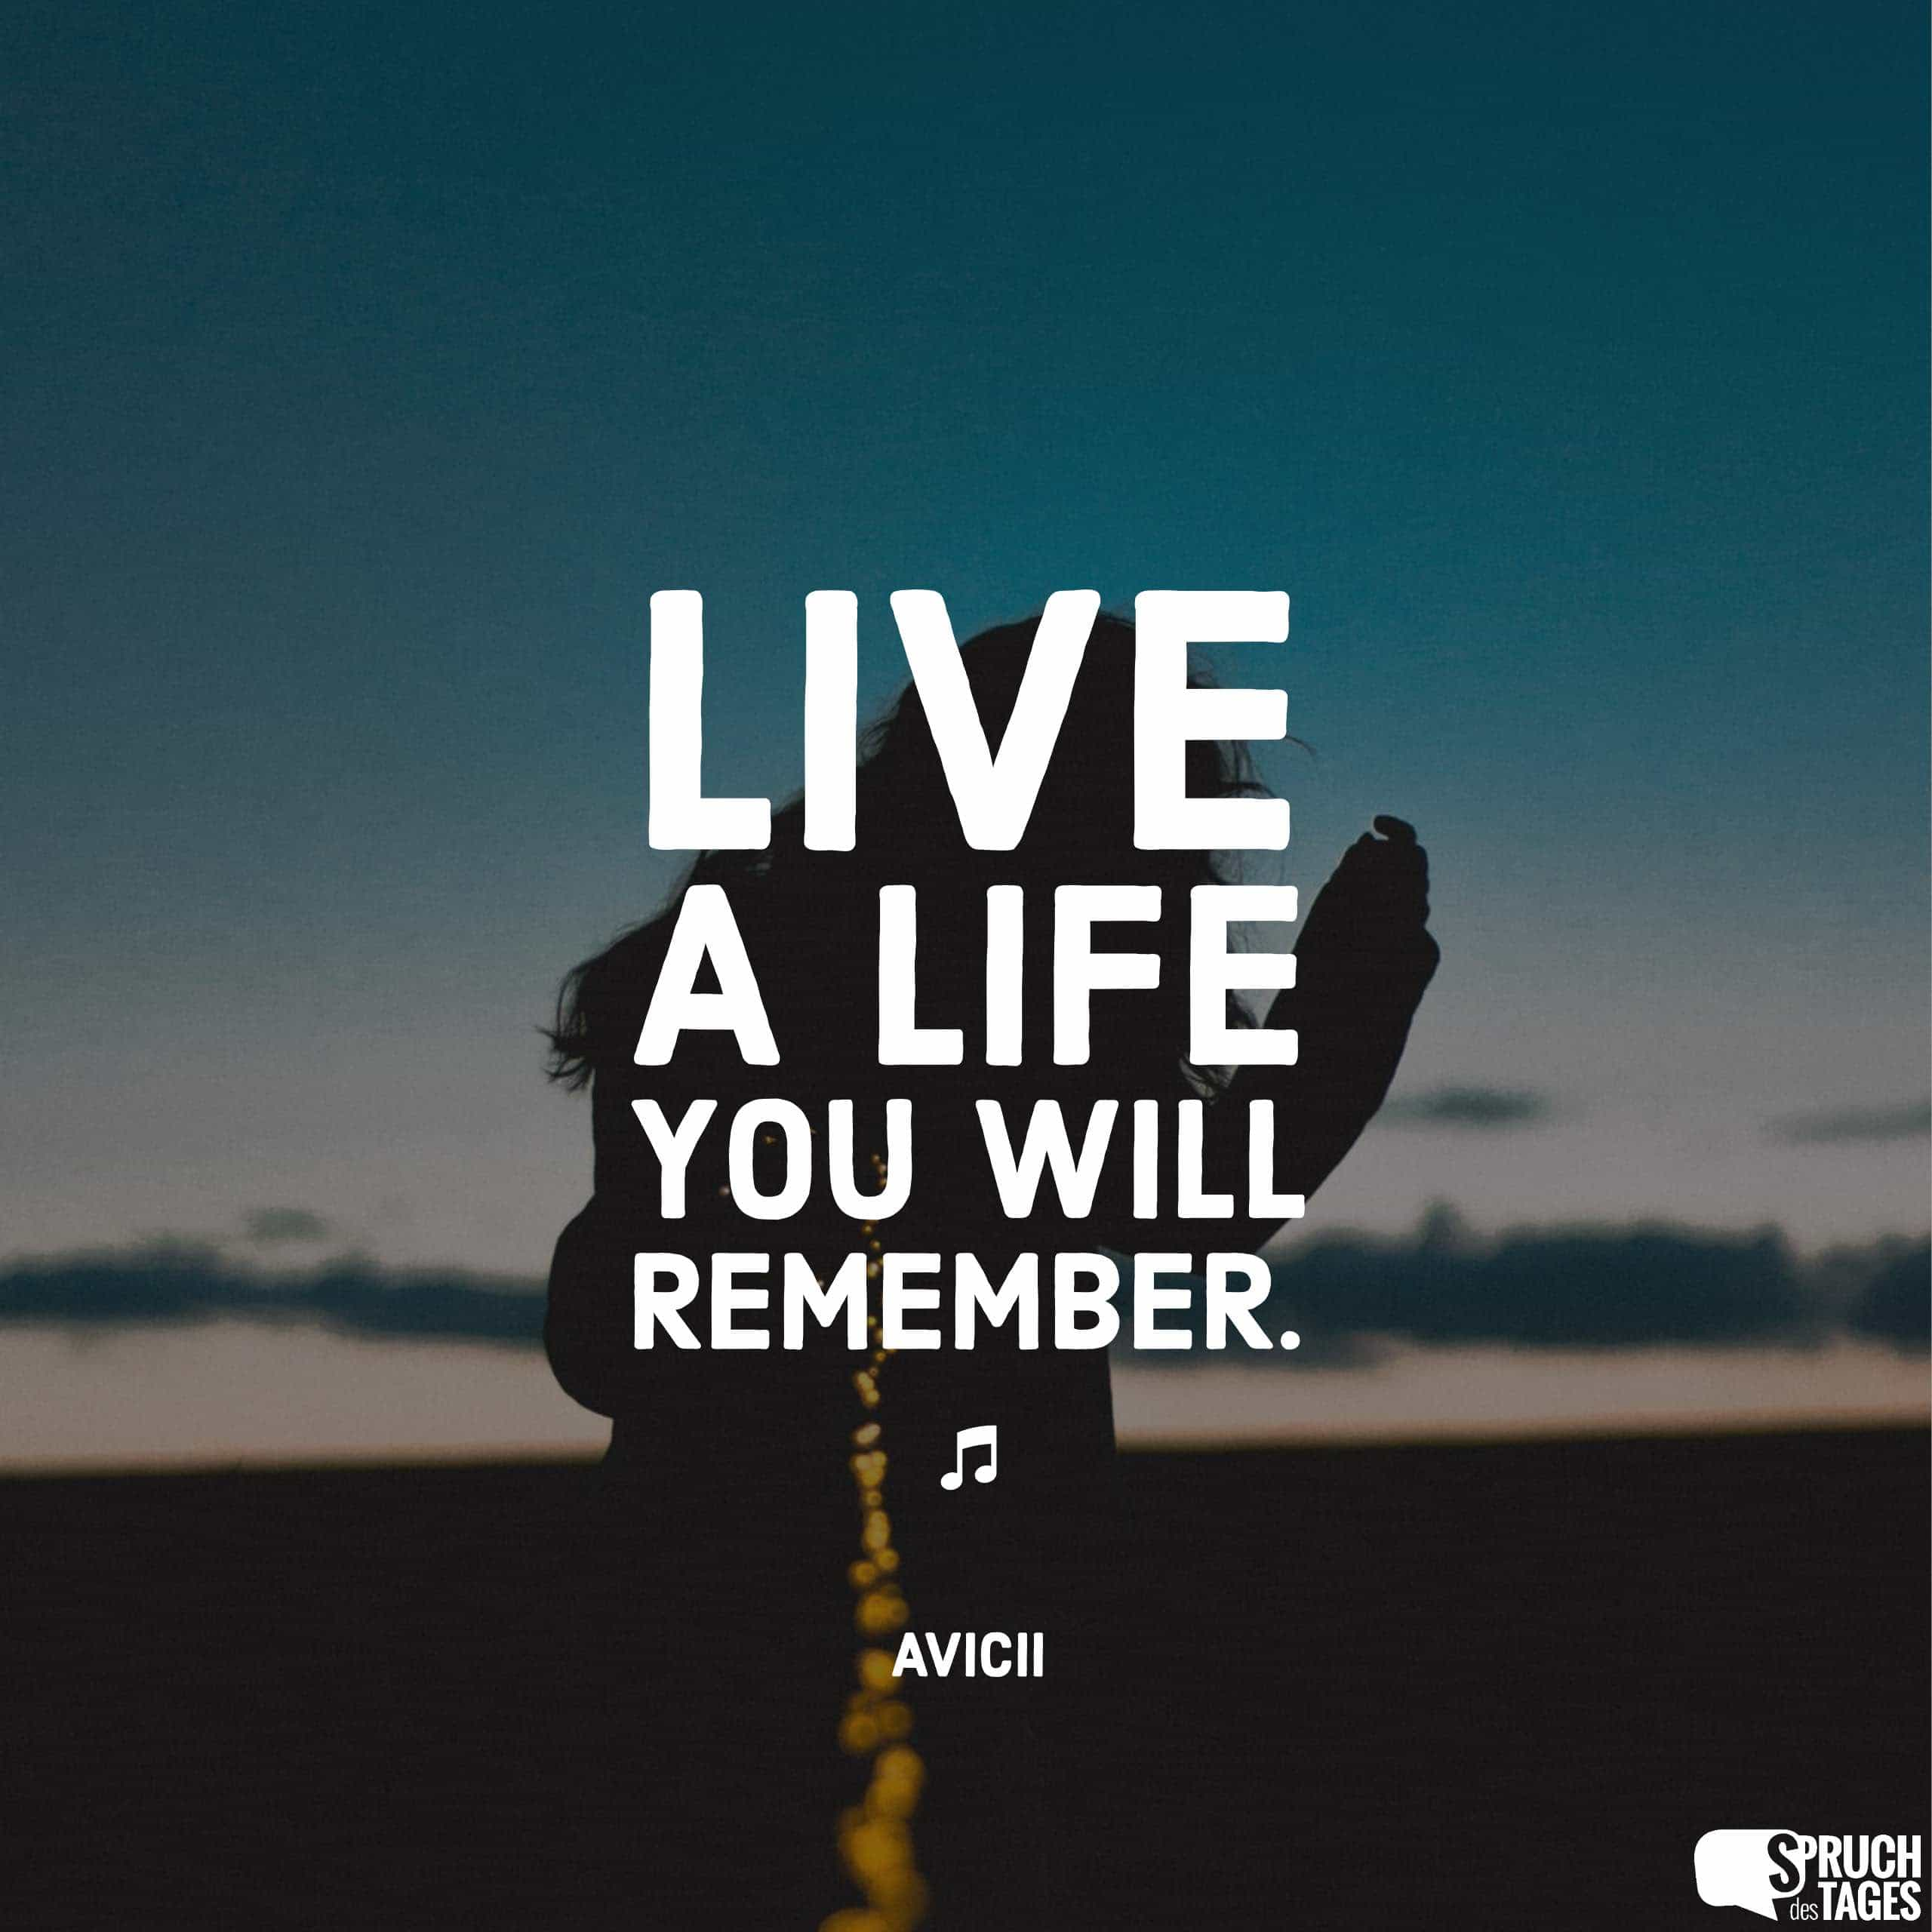 Live a life you will remember.